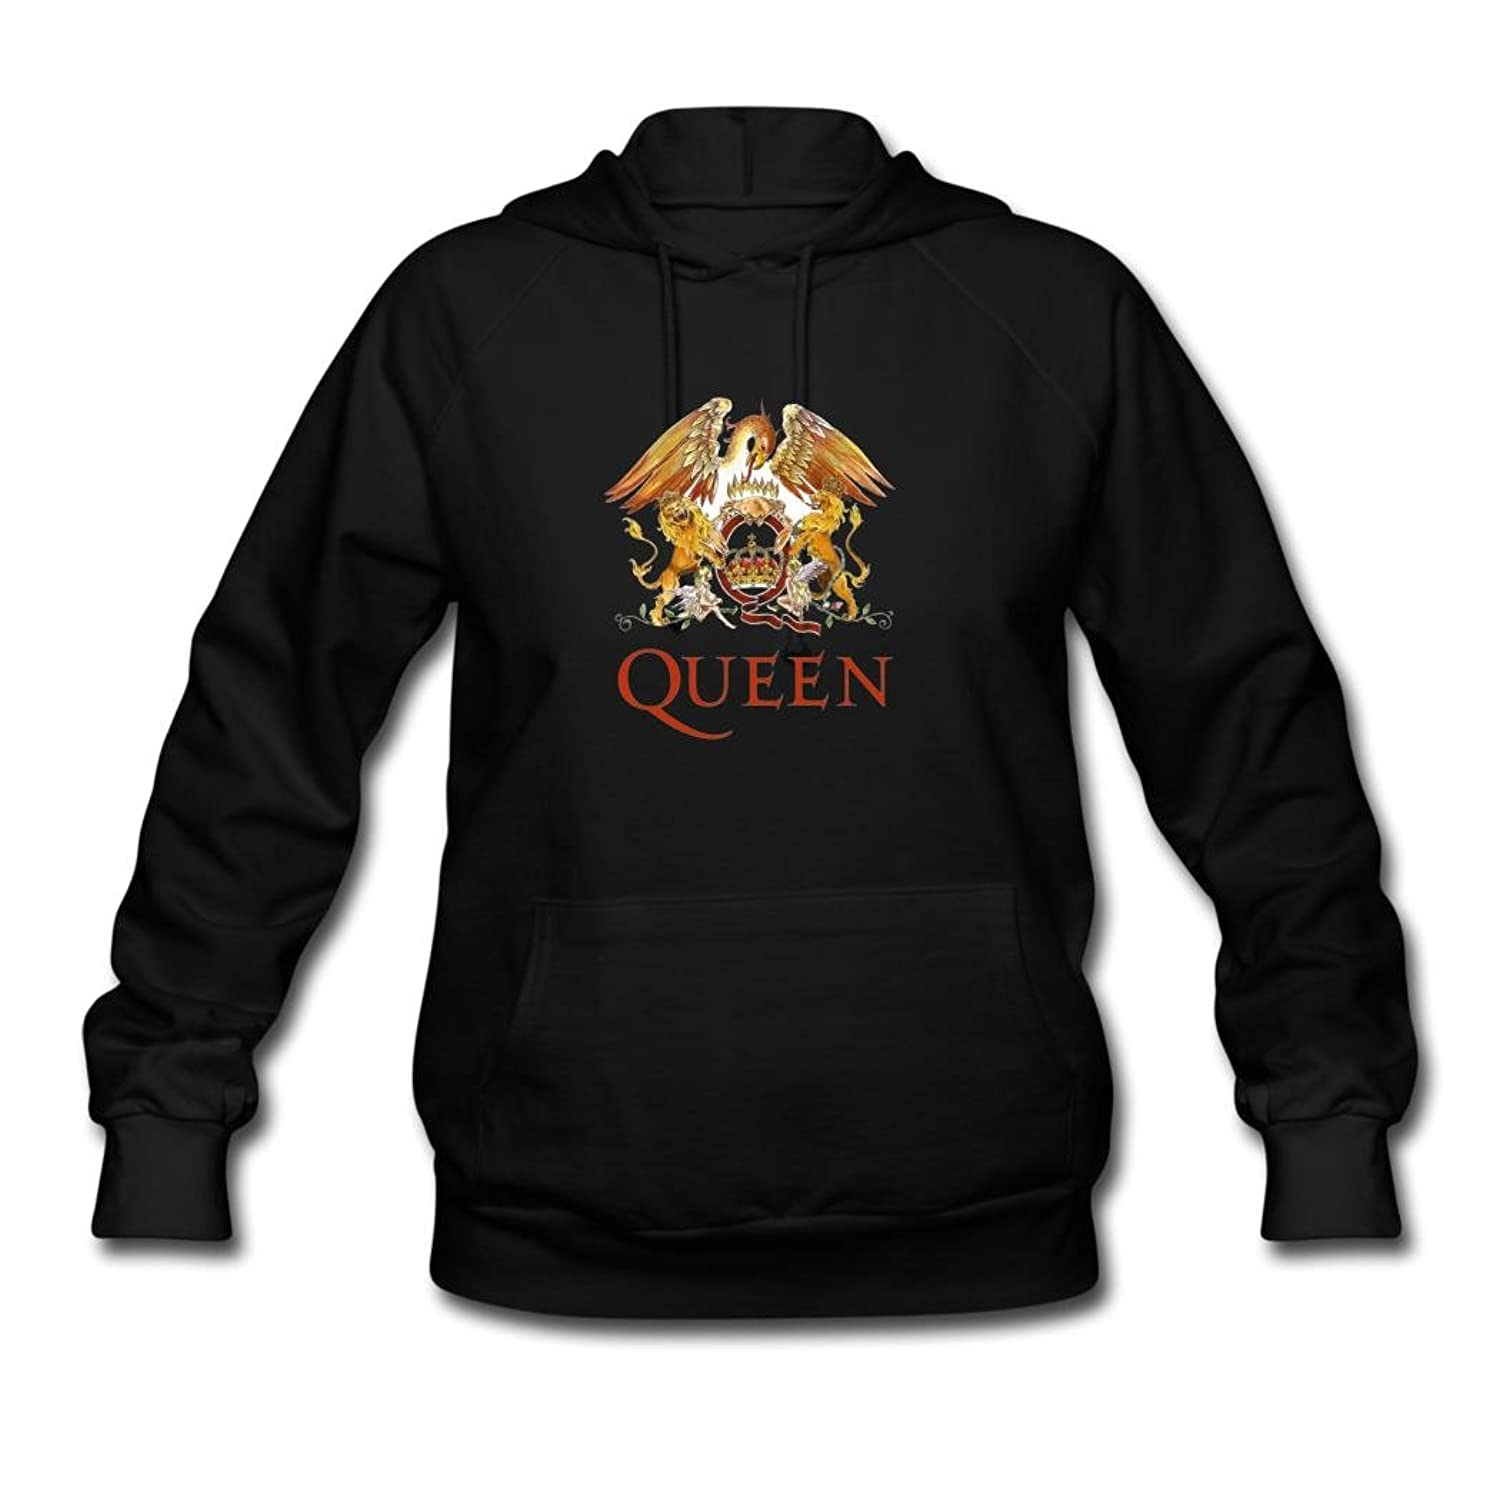 OIAE Women's Queen Band Logo Hoodies Sweatshirt